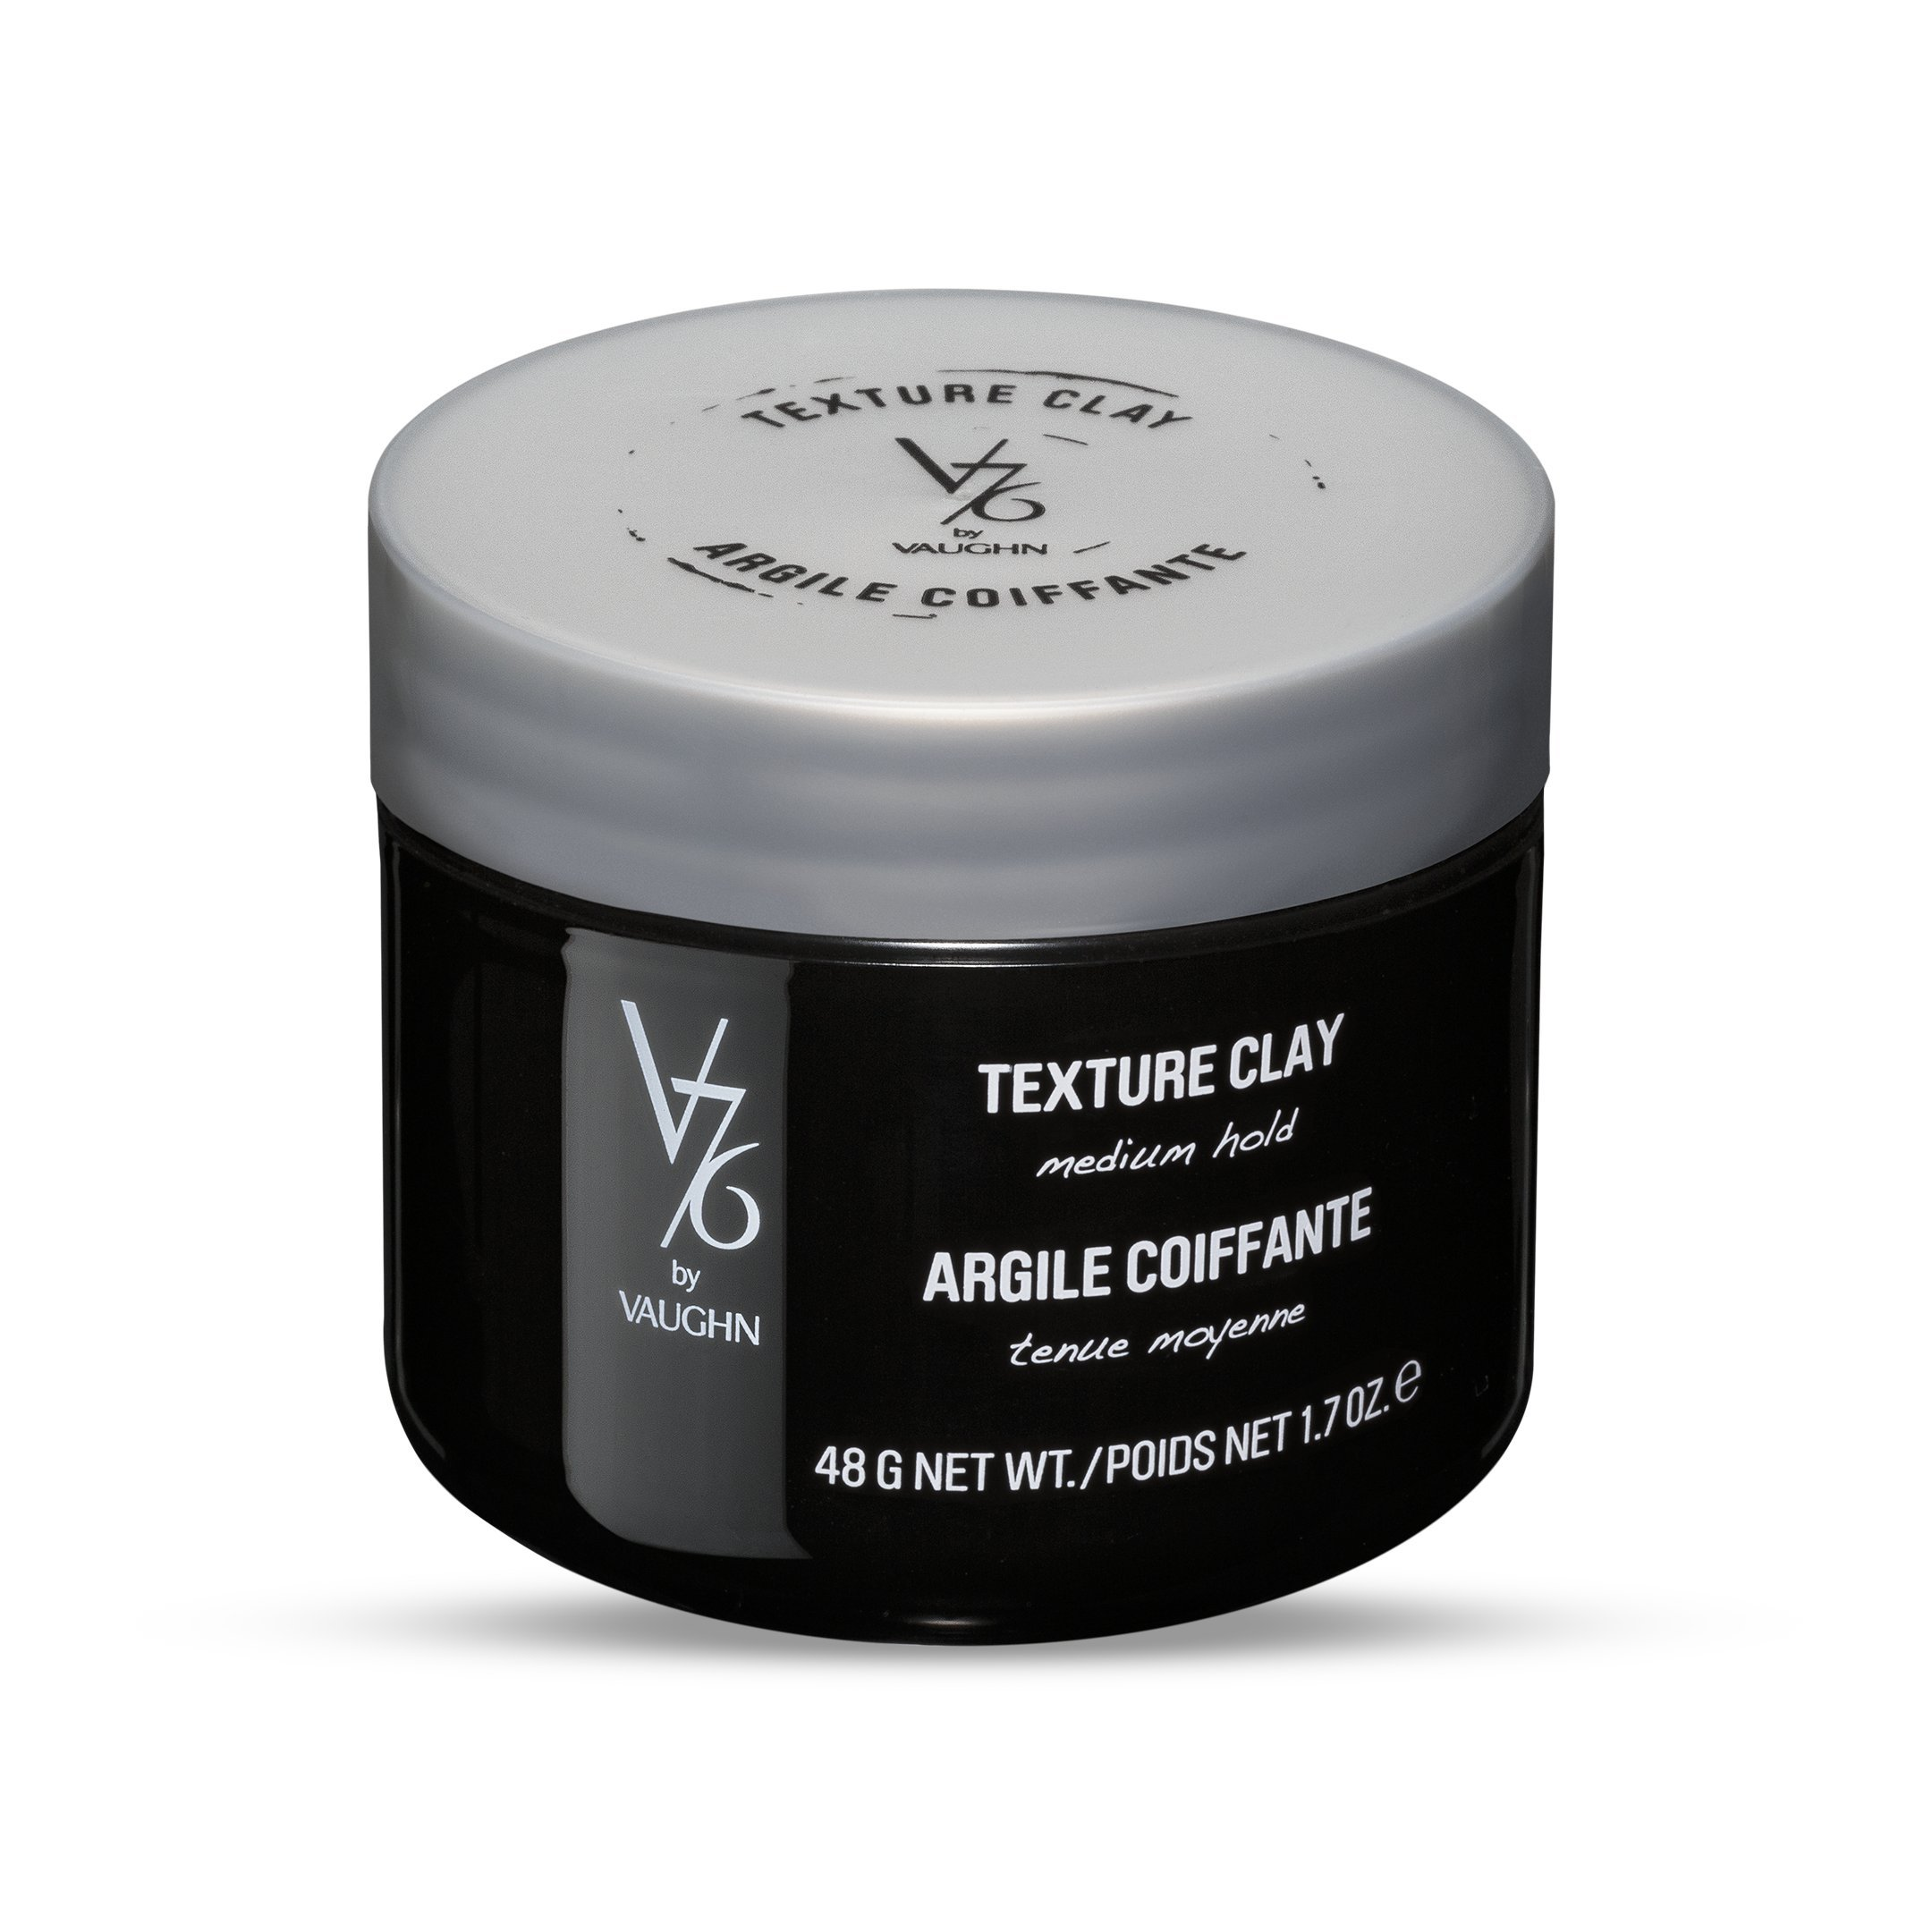 V76 by Vaughn TEXTURE CLAY Medium Hold Formula for Men by V76 by Vaughn